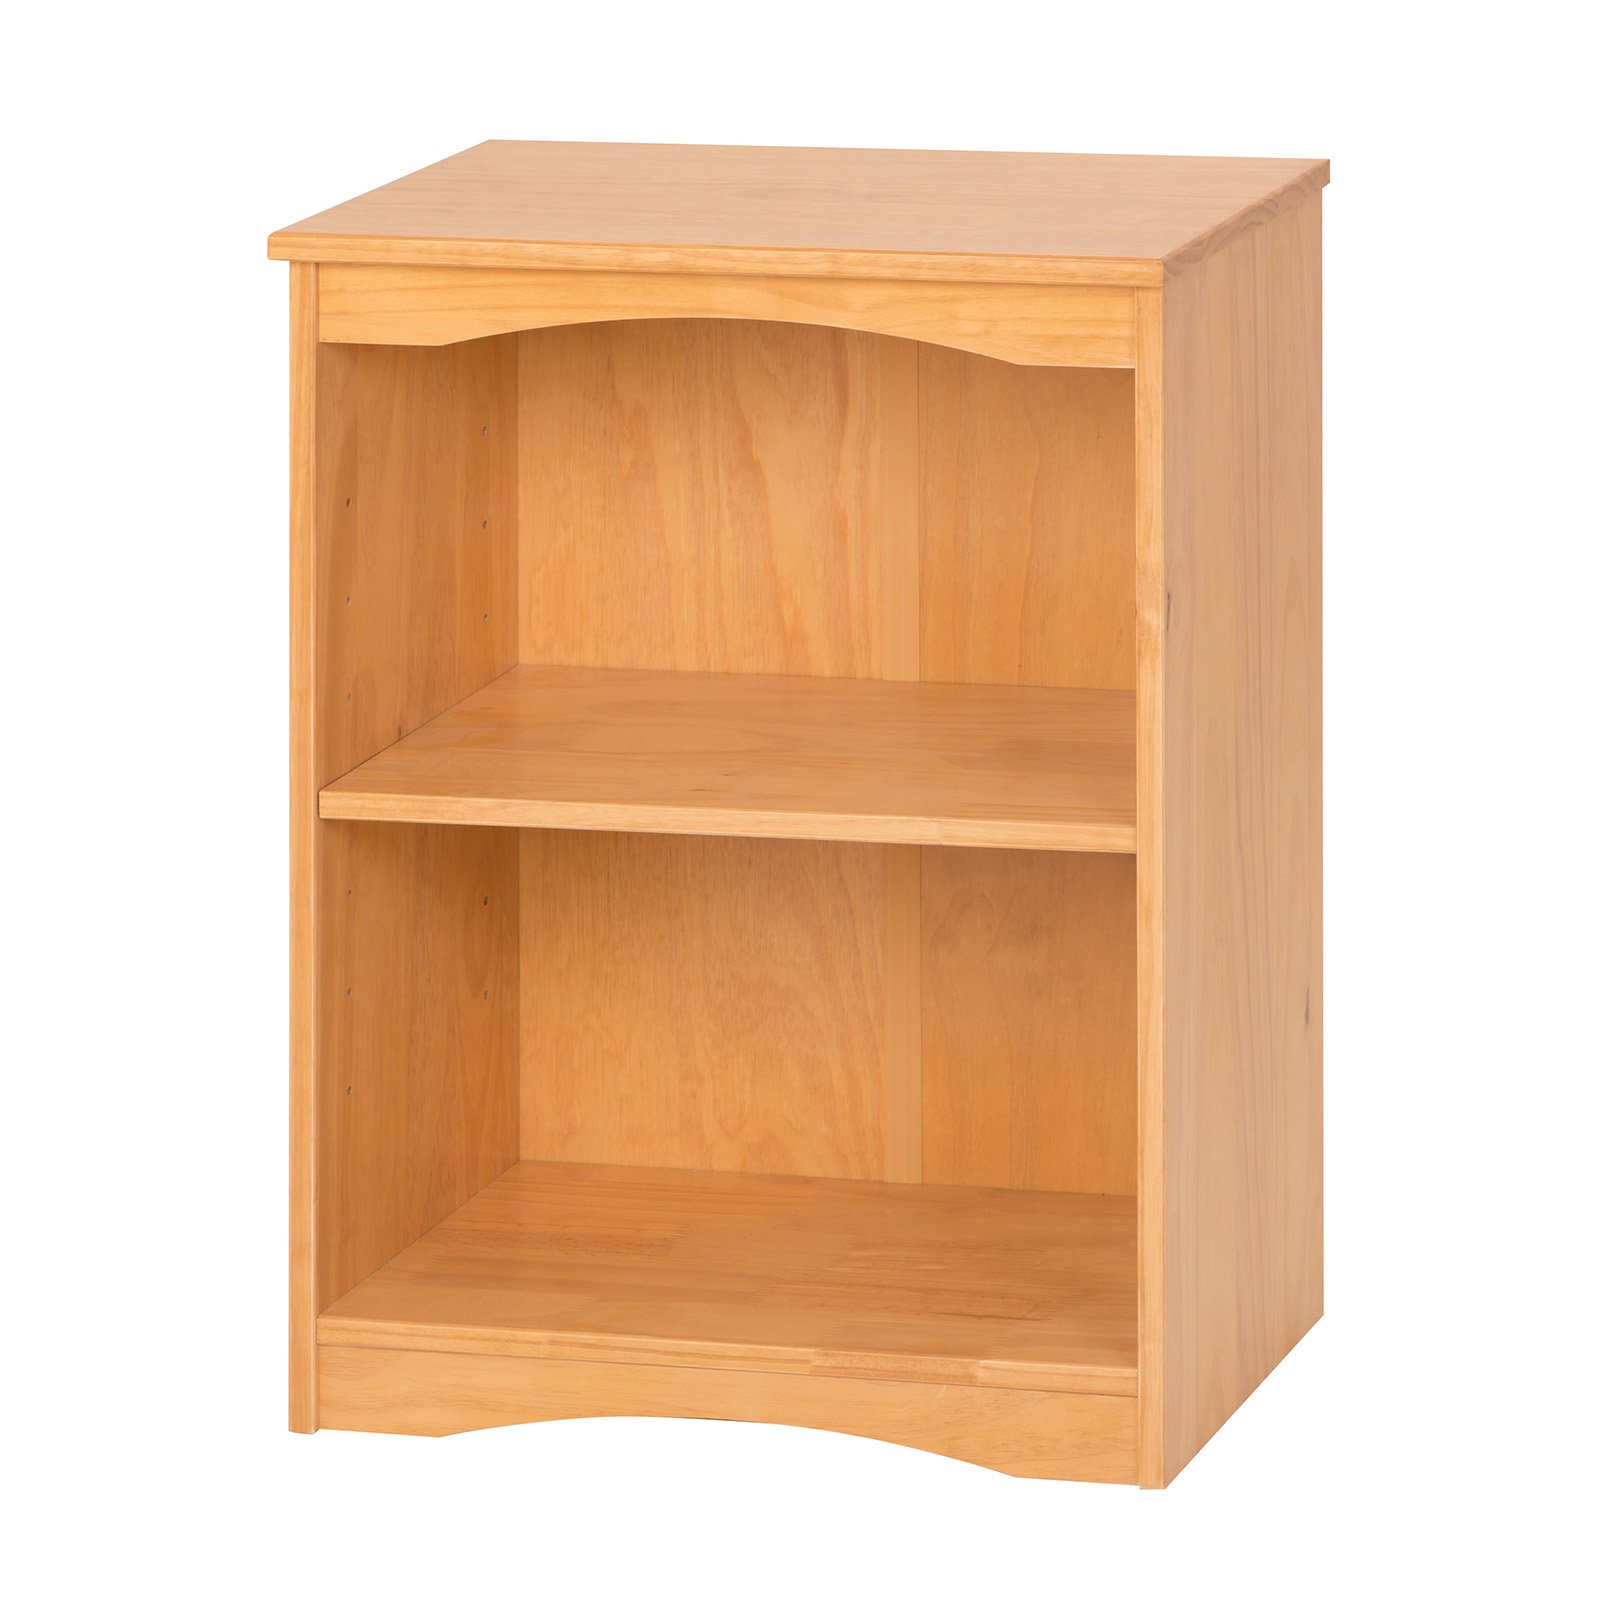 "Essentials Wooden Bookcase 23"" Wide - Multiple Finishes"